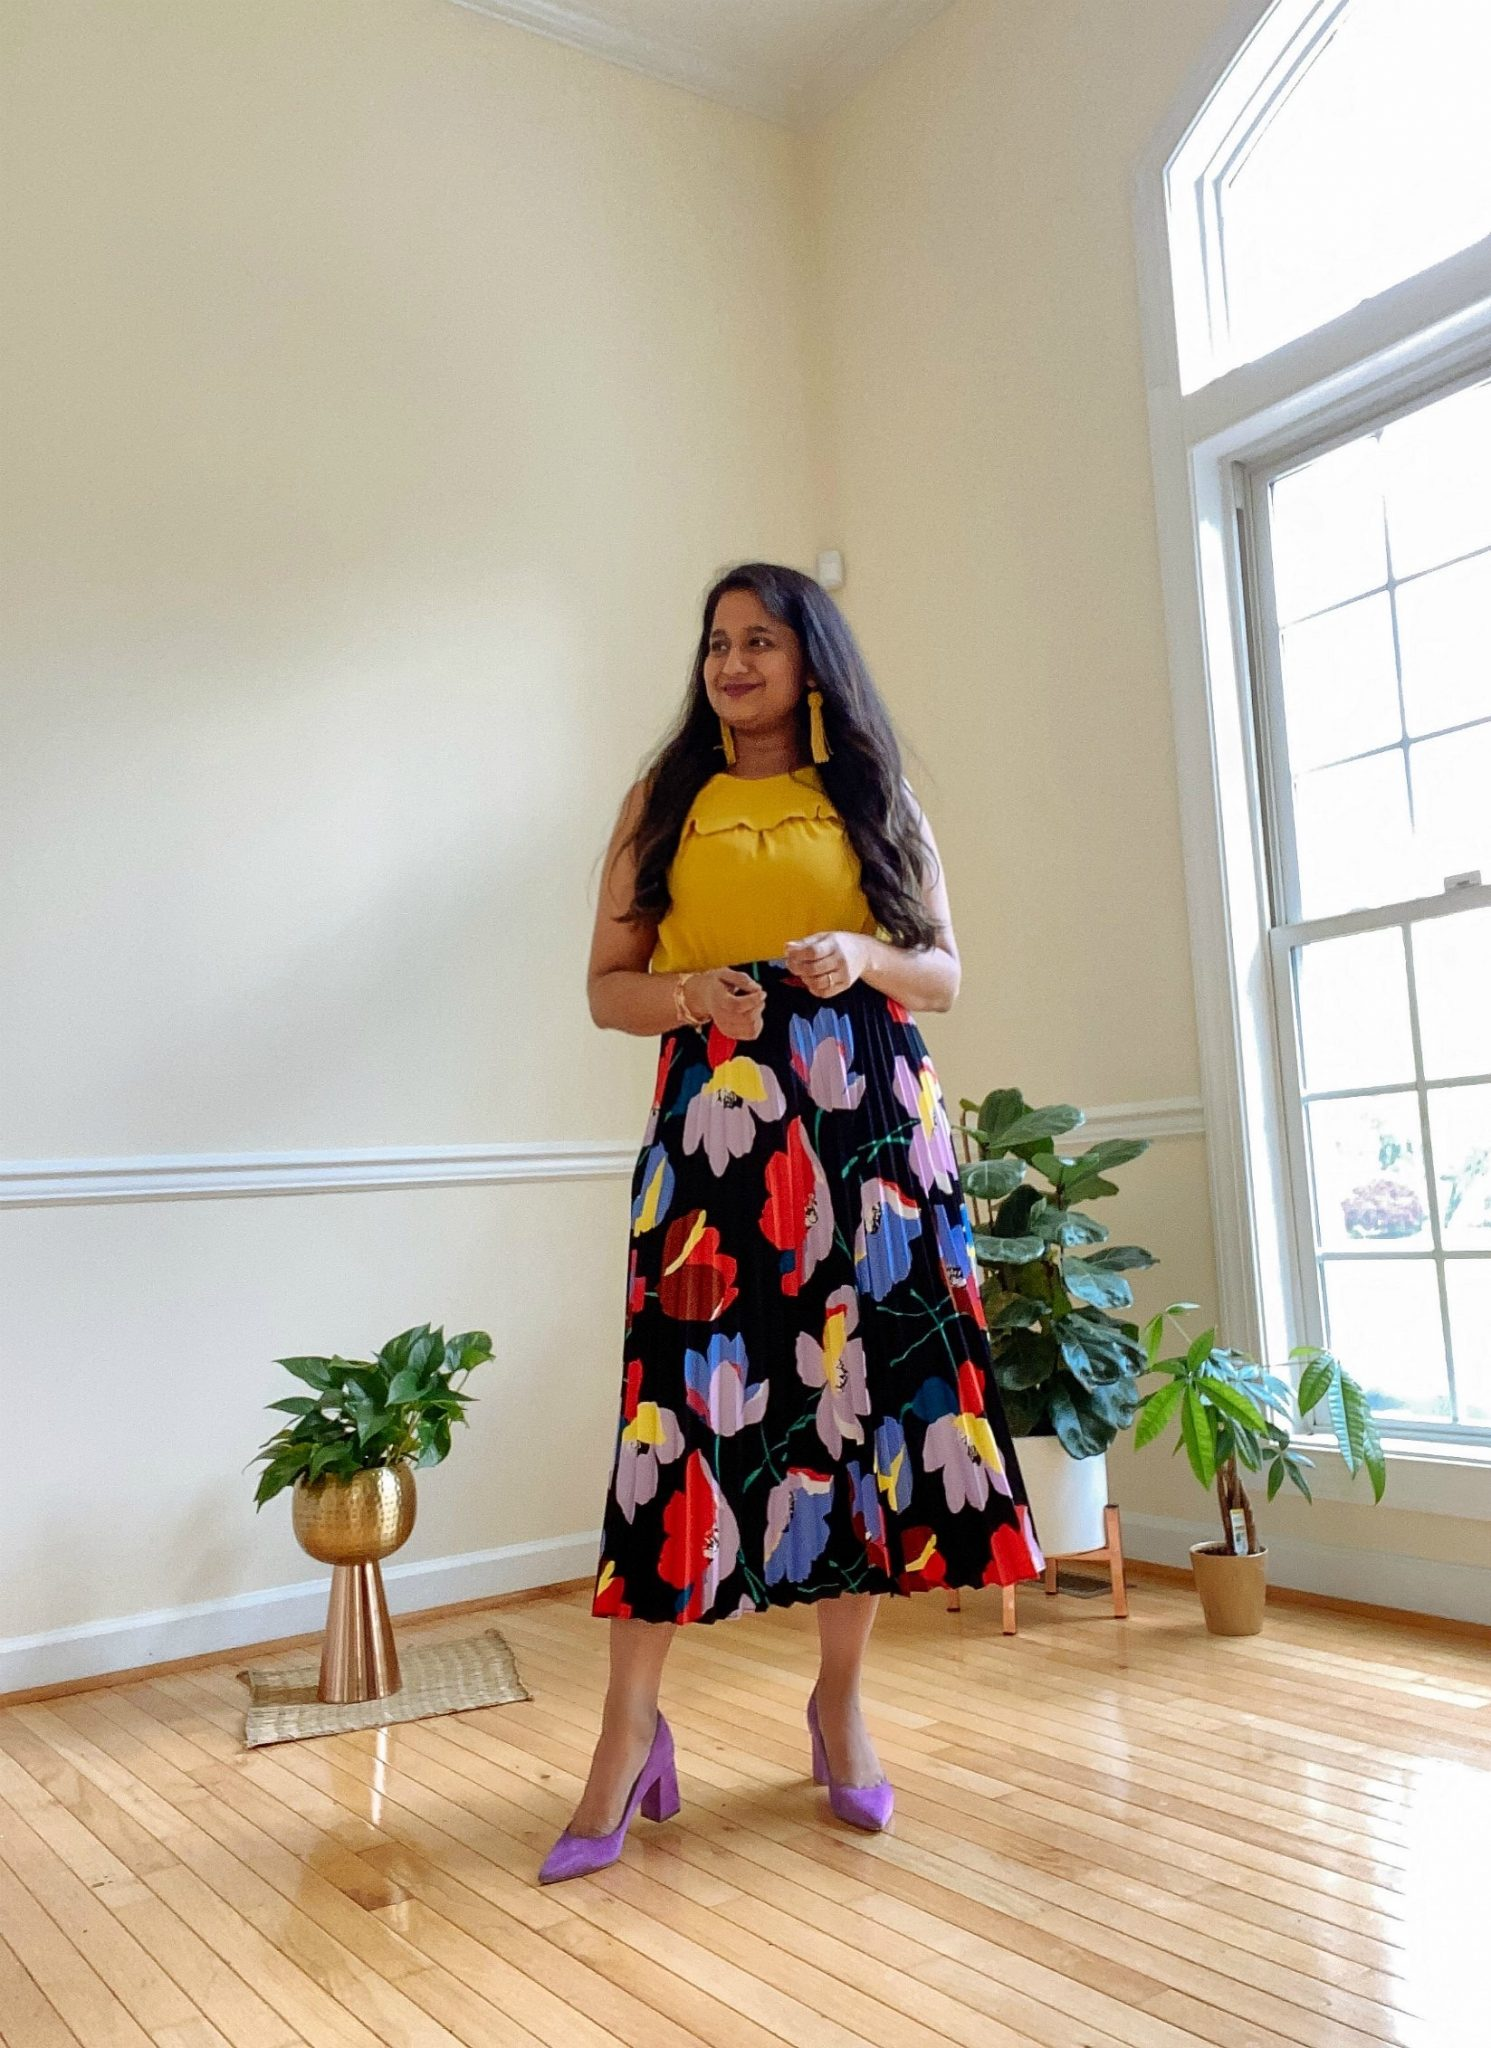 Halogen Floral pleated skirt, Loft Shell in yellow, Marc Fisher Zala pumps in purple | Casual Outfits by popular Maryland lifestyle blog, Dreaming Loud: image of a woman wearing a Halogen Floral pleated skirt, Loft Shell in yellow, and Marc Fisher Zala pumps in purple.